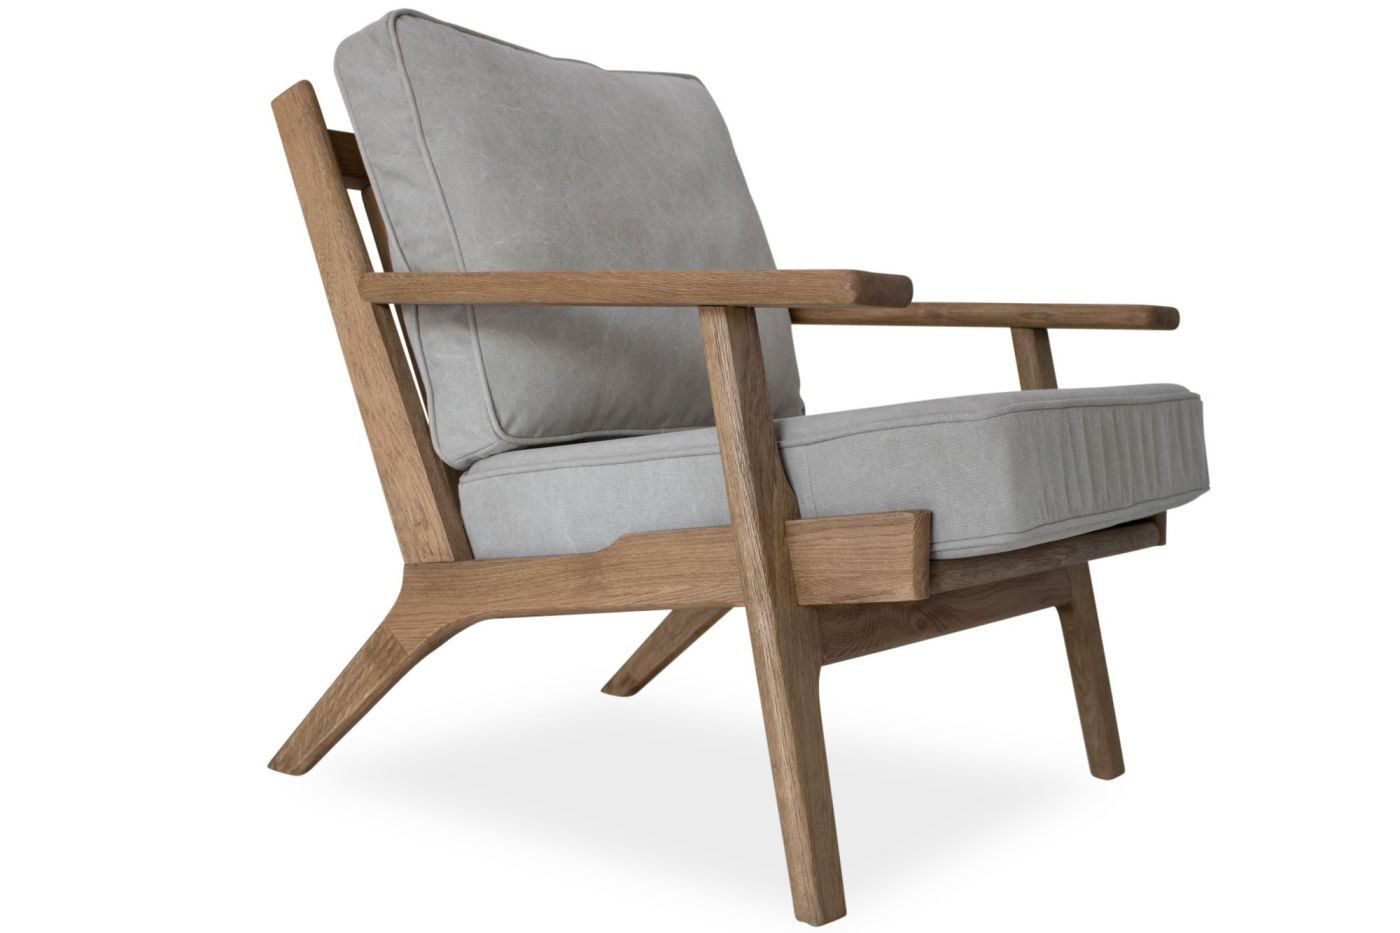 Brilliant Buy Edloe Finch Ef Z2 Lc006 Beckett Mid Century Modern Lounge Chair Beige Linen At Contemporary Furniture Warehouse Gmtry Best Dining Table And Chair Ideas Images Gmtryco